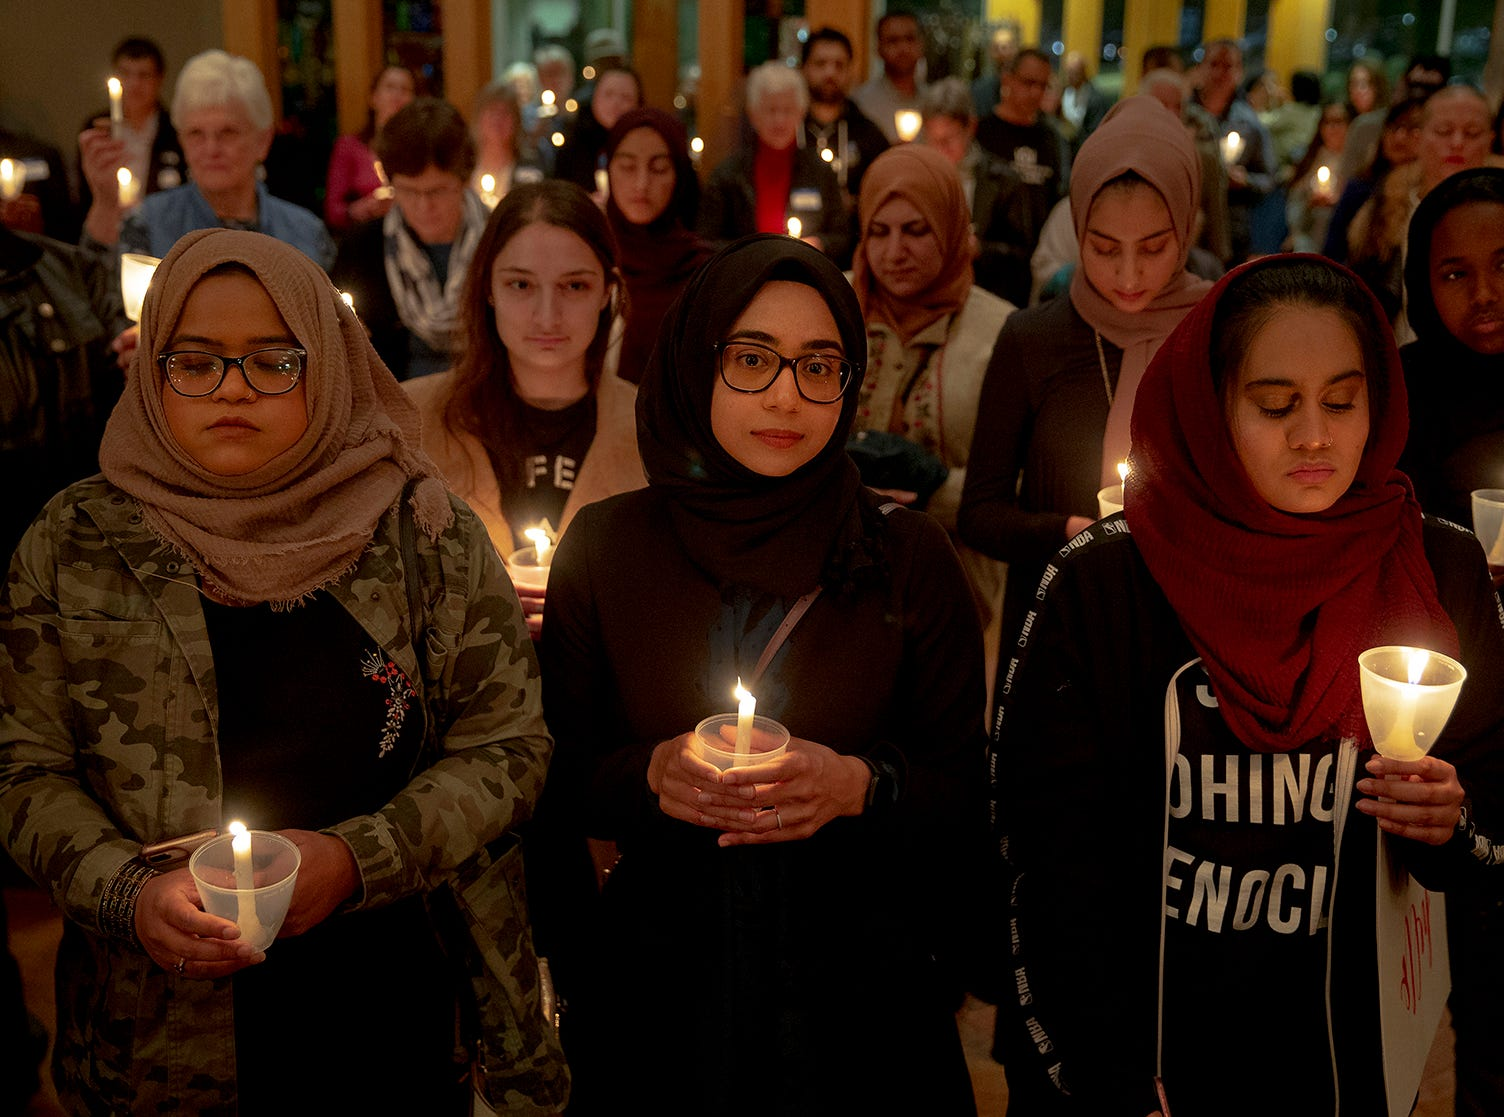 From left, Syeda Sabeera, Sumaiya Syed and Amina Choudhury stand with candles during a prayer service at St. James Episcopal Church on Saturday, March 16, 2019, in Austin, Texas. The service was held in honor of those killed and injured in Friday's mass shooting at two mosques in Christchurch, New Zealand.